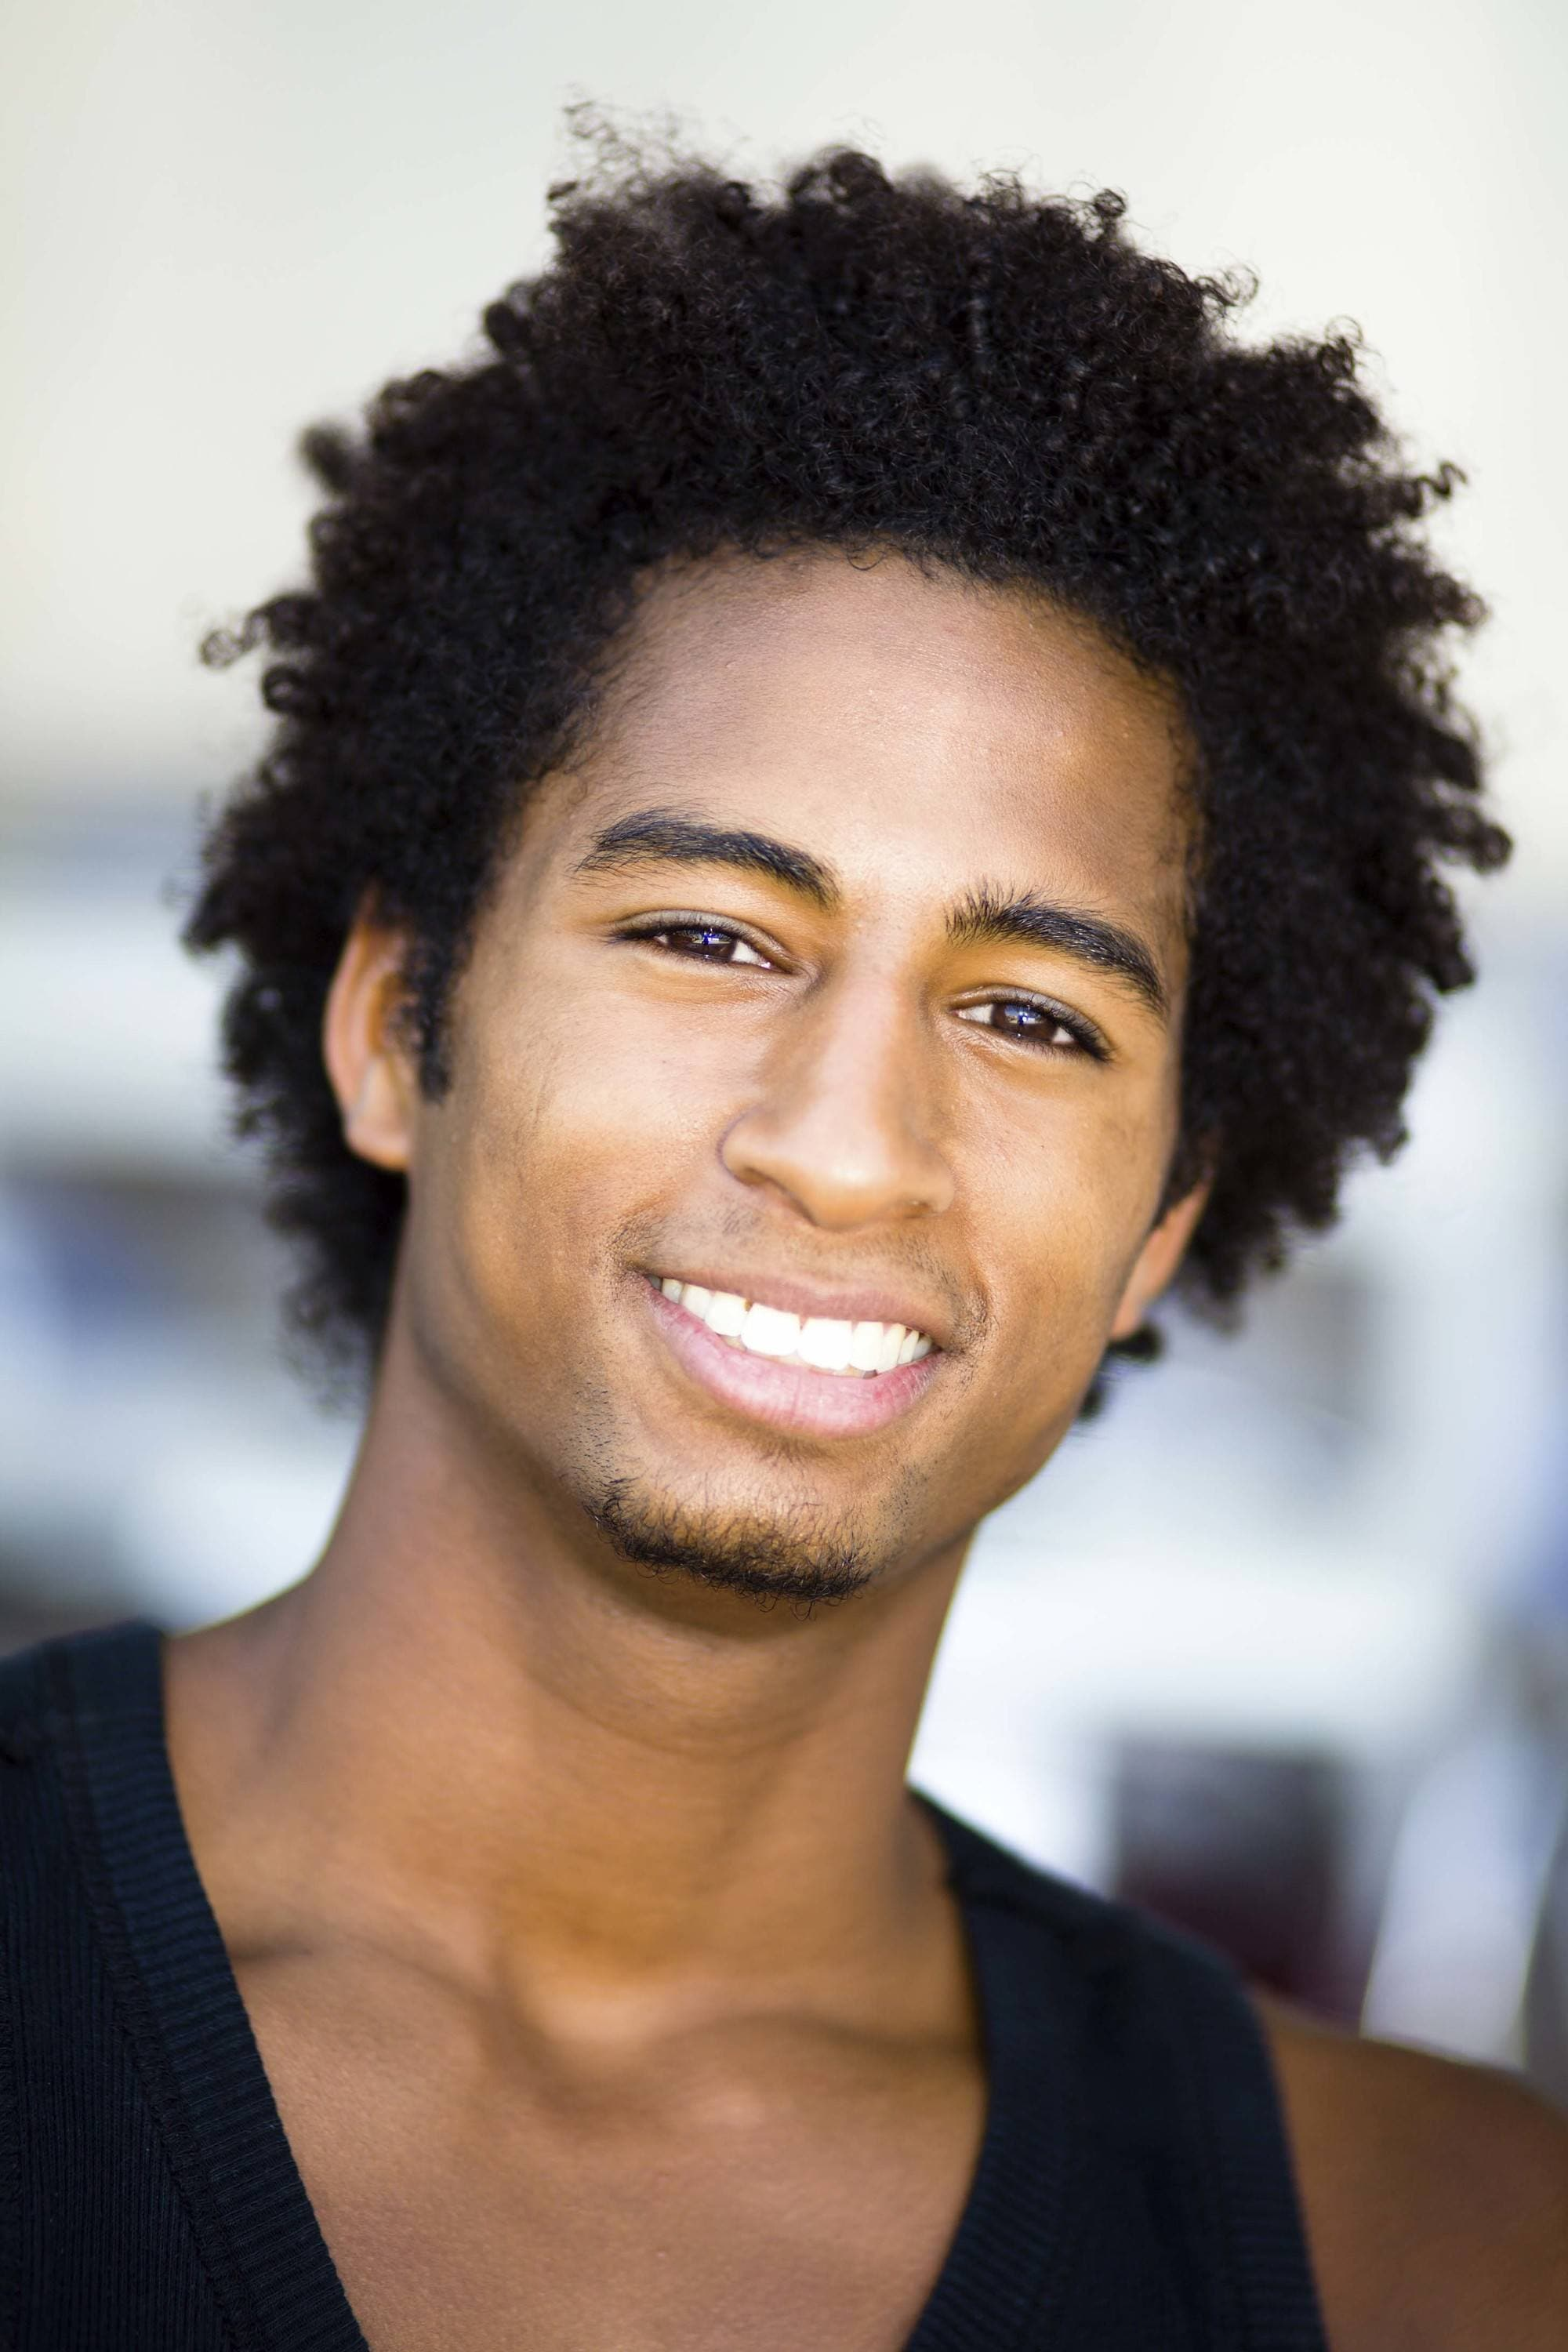 style men's curls in an afro style